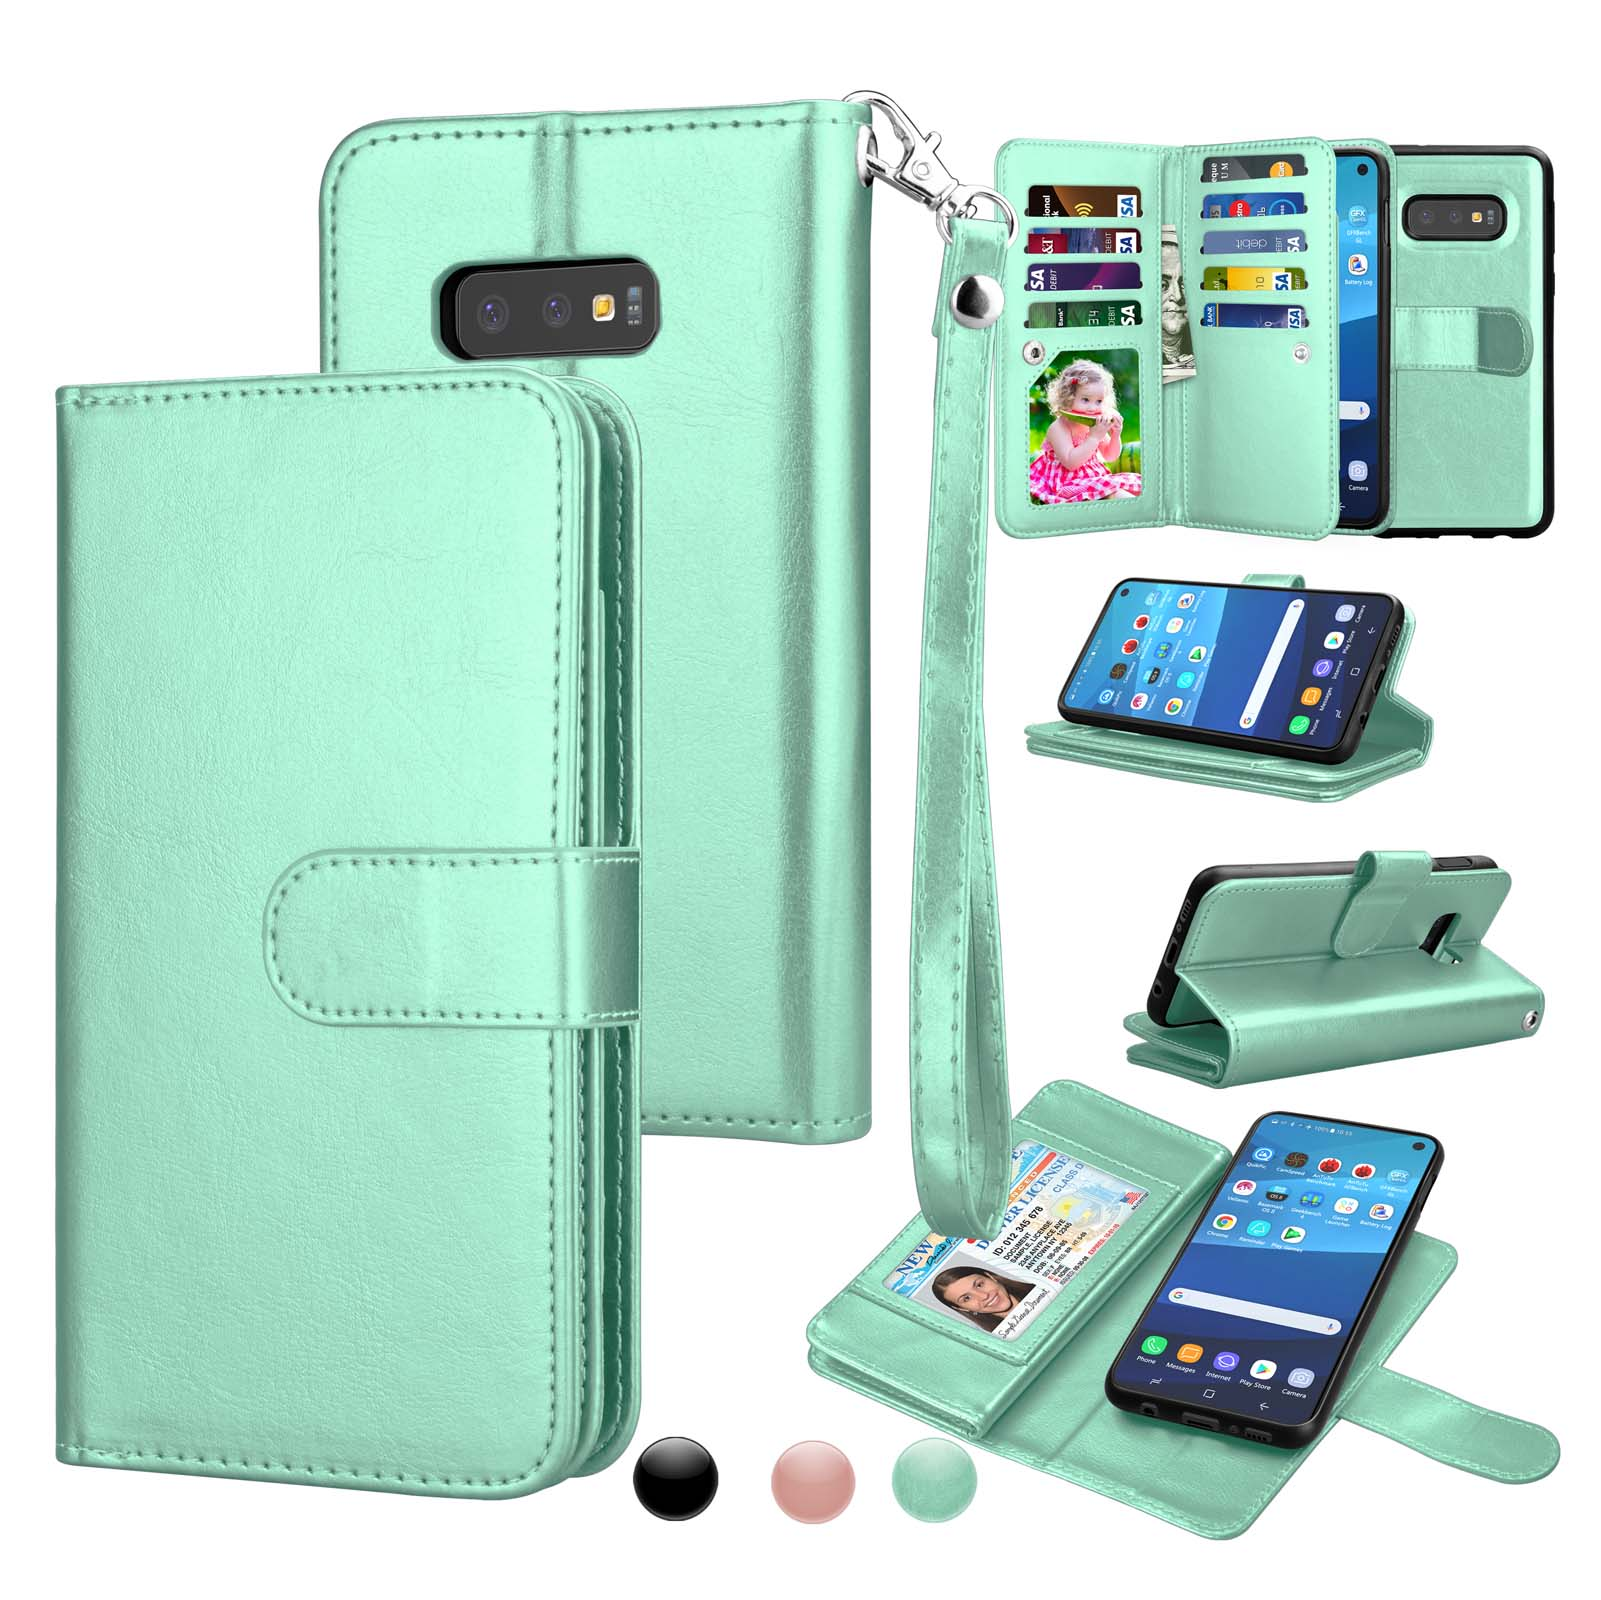 Wallet Cases For Samsung Galaxy S10 / S10E / S10+ / S10 Plus / S9 / S9+ / S9 Plus, Njjex [Wrist Strap] Luxury PU Leather Wallet Flip Protective Case Cover with 9 Card Slots & KickStand -Turquoise